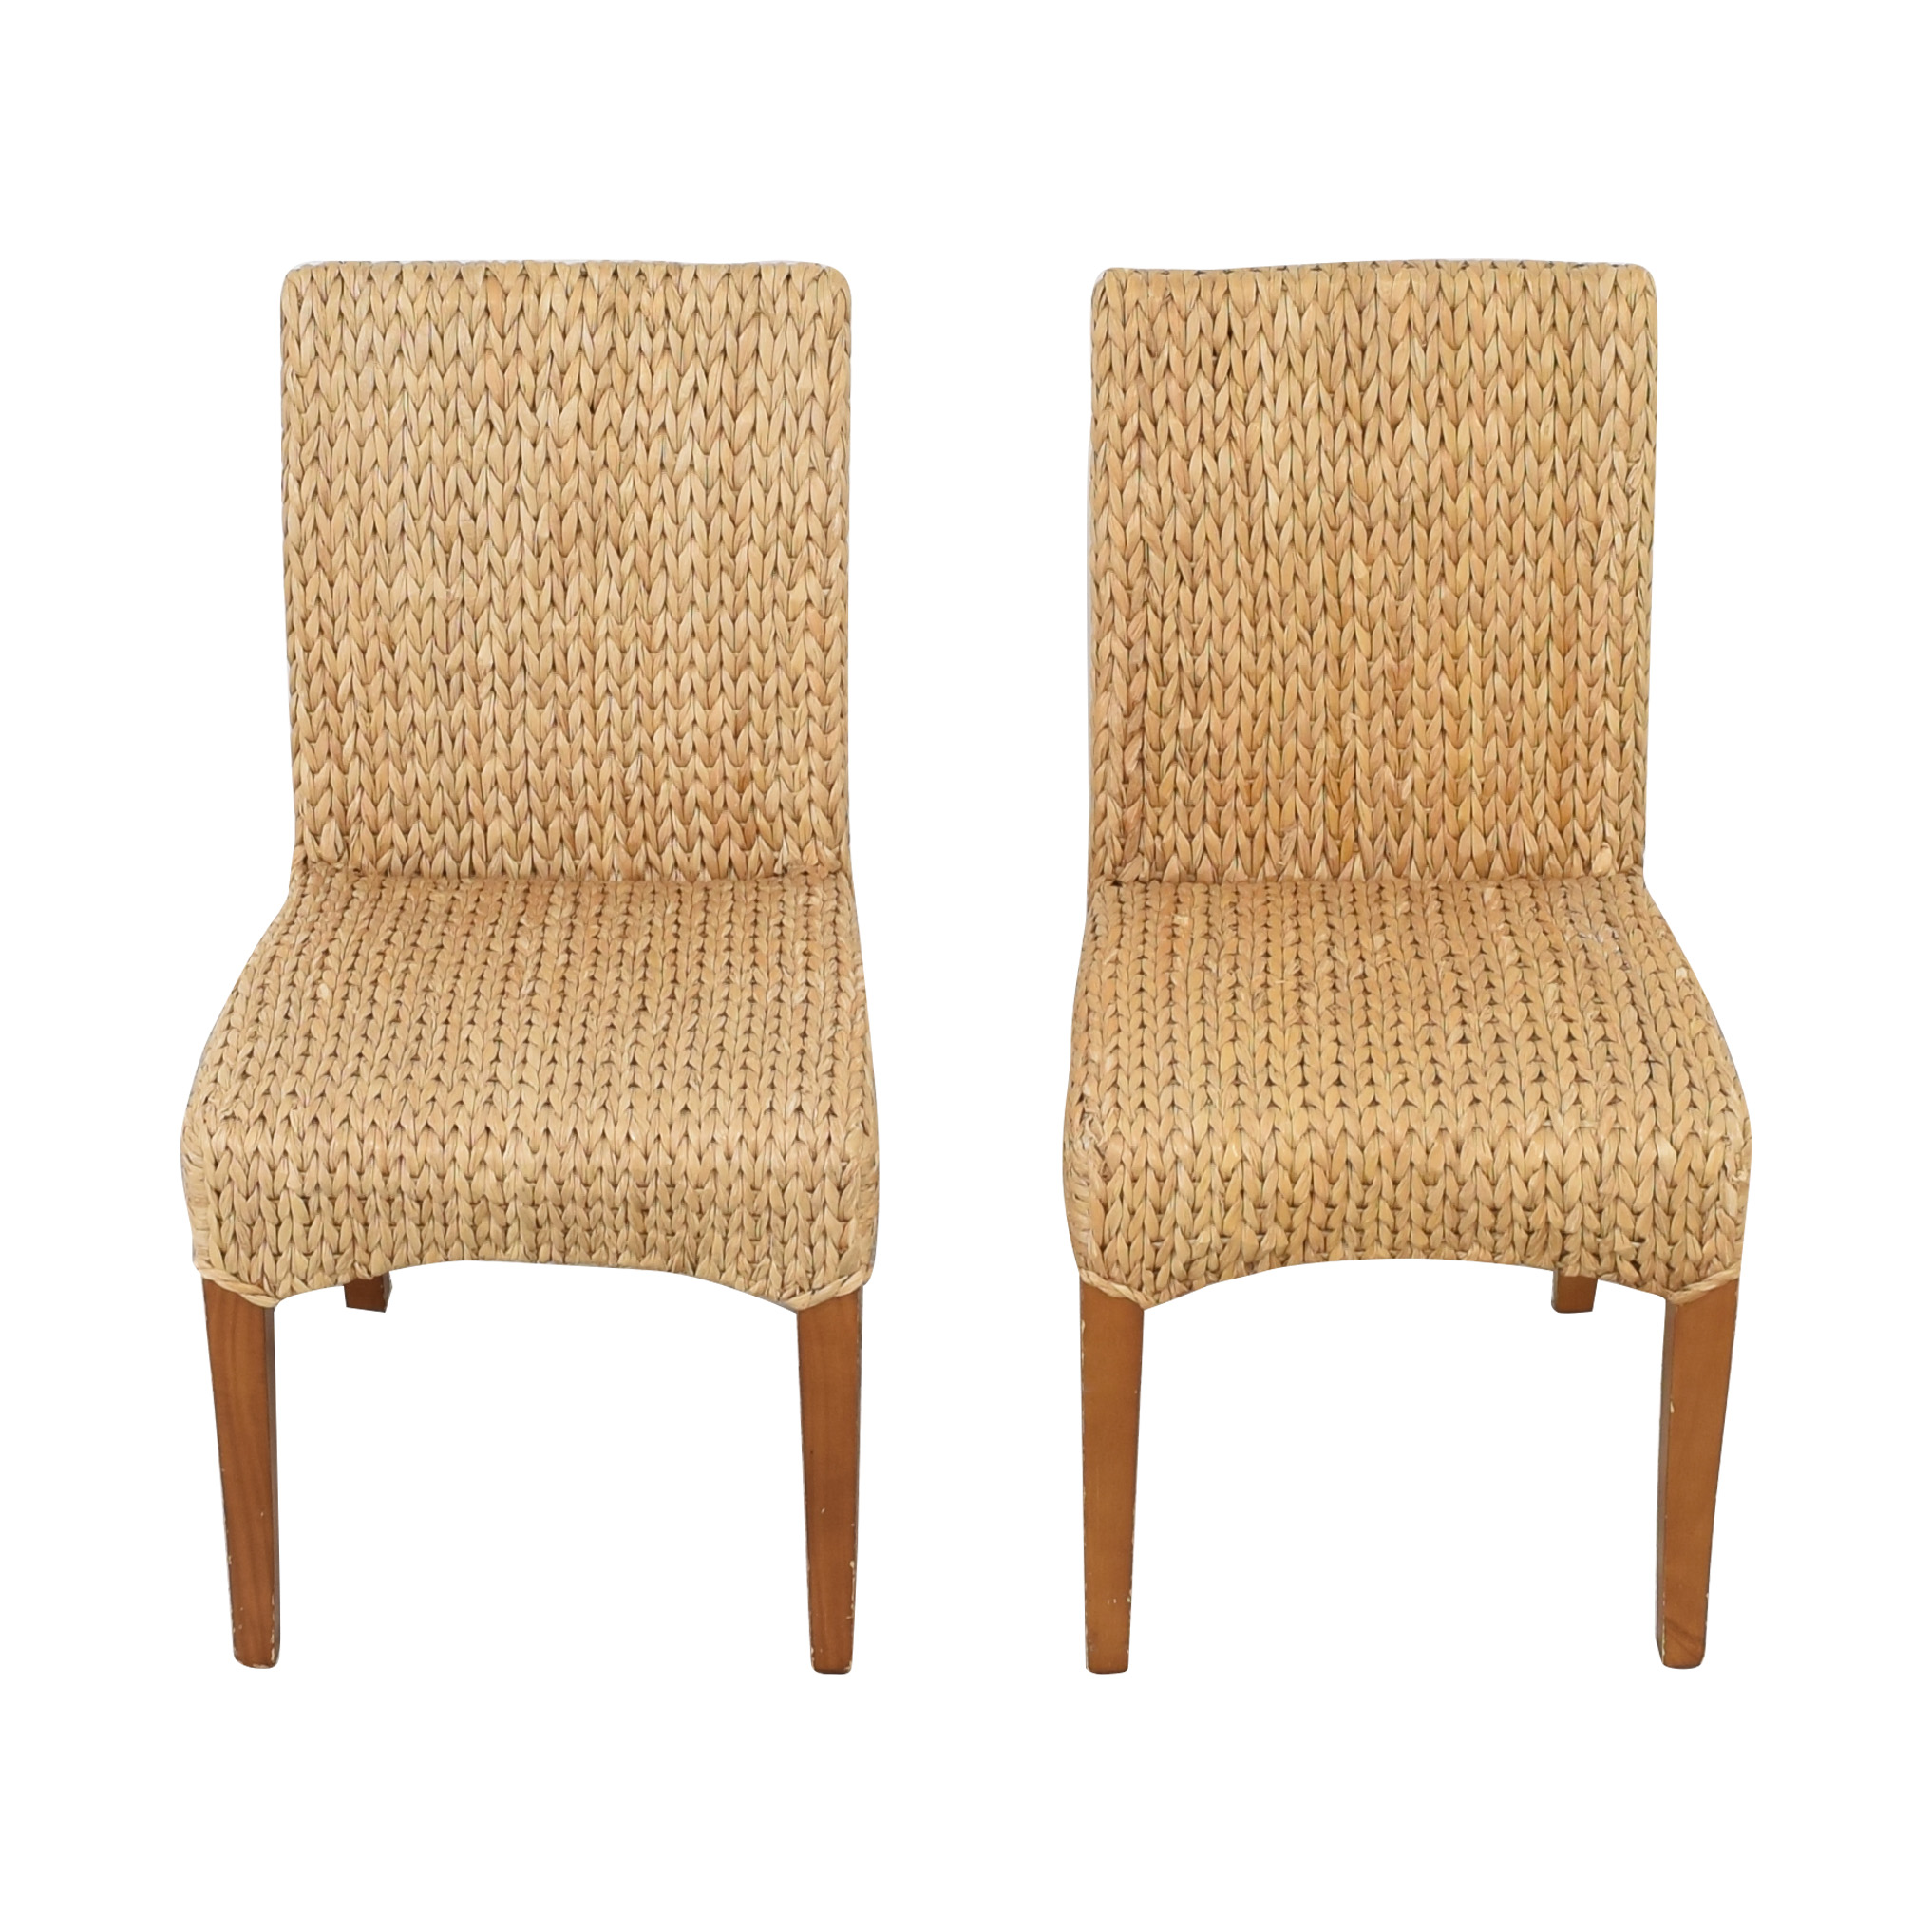 Pottery Barn Pottery Barn Seagrass Dining Side Chairs second hand